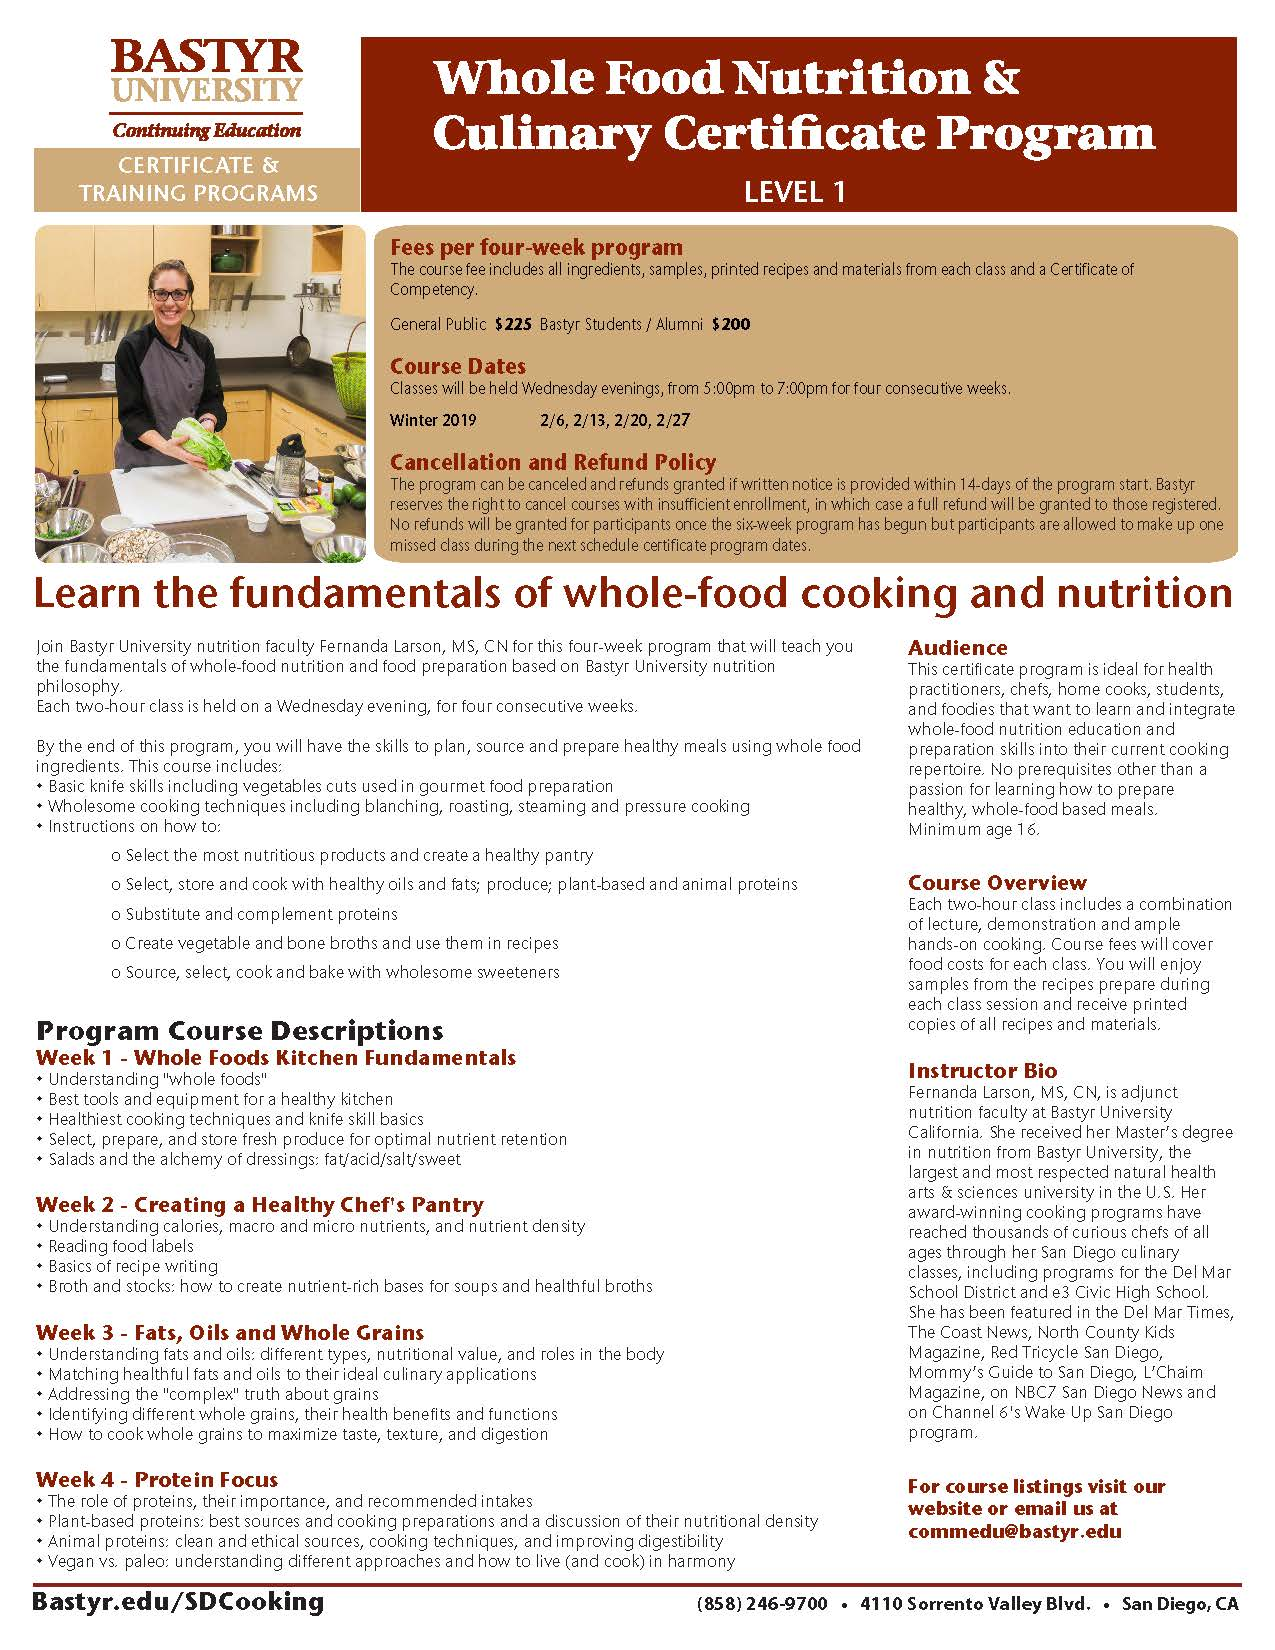 Whole Food Nutrition Culinary Certificate Program